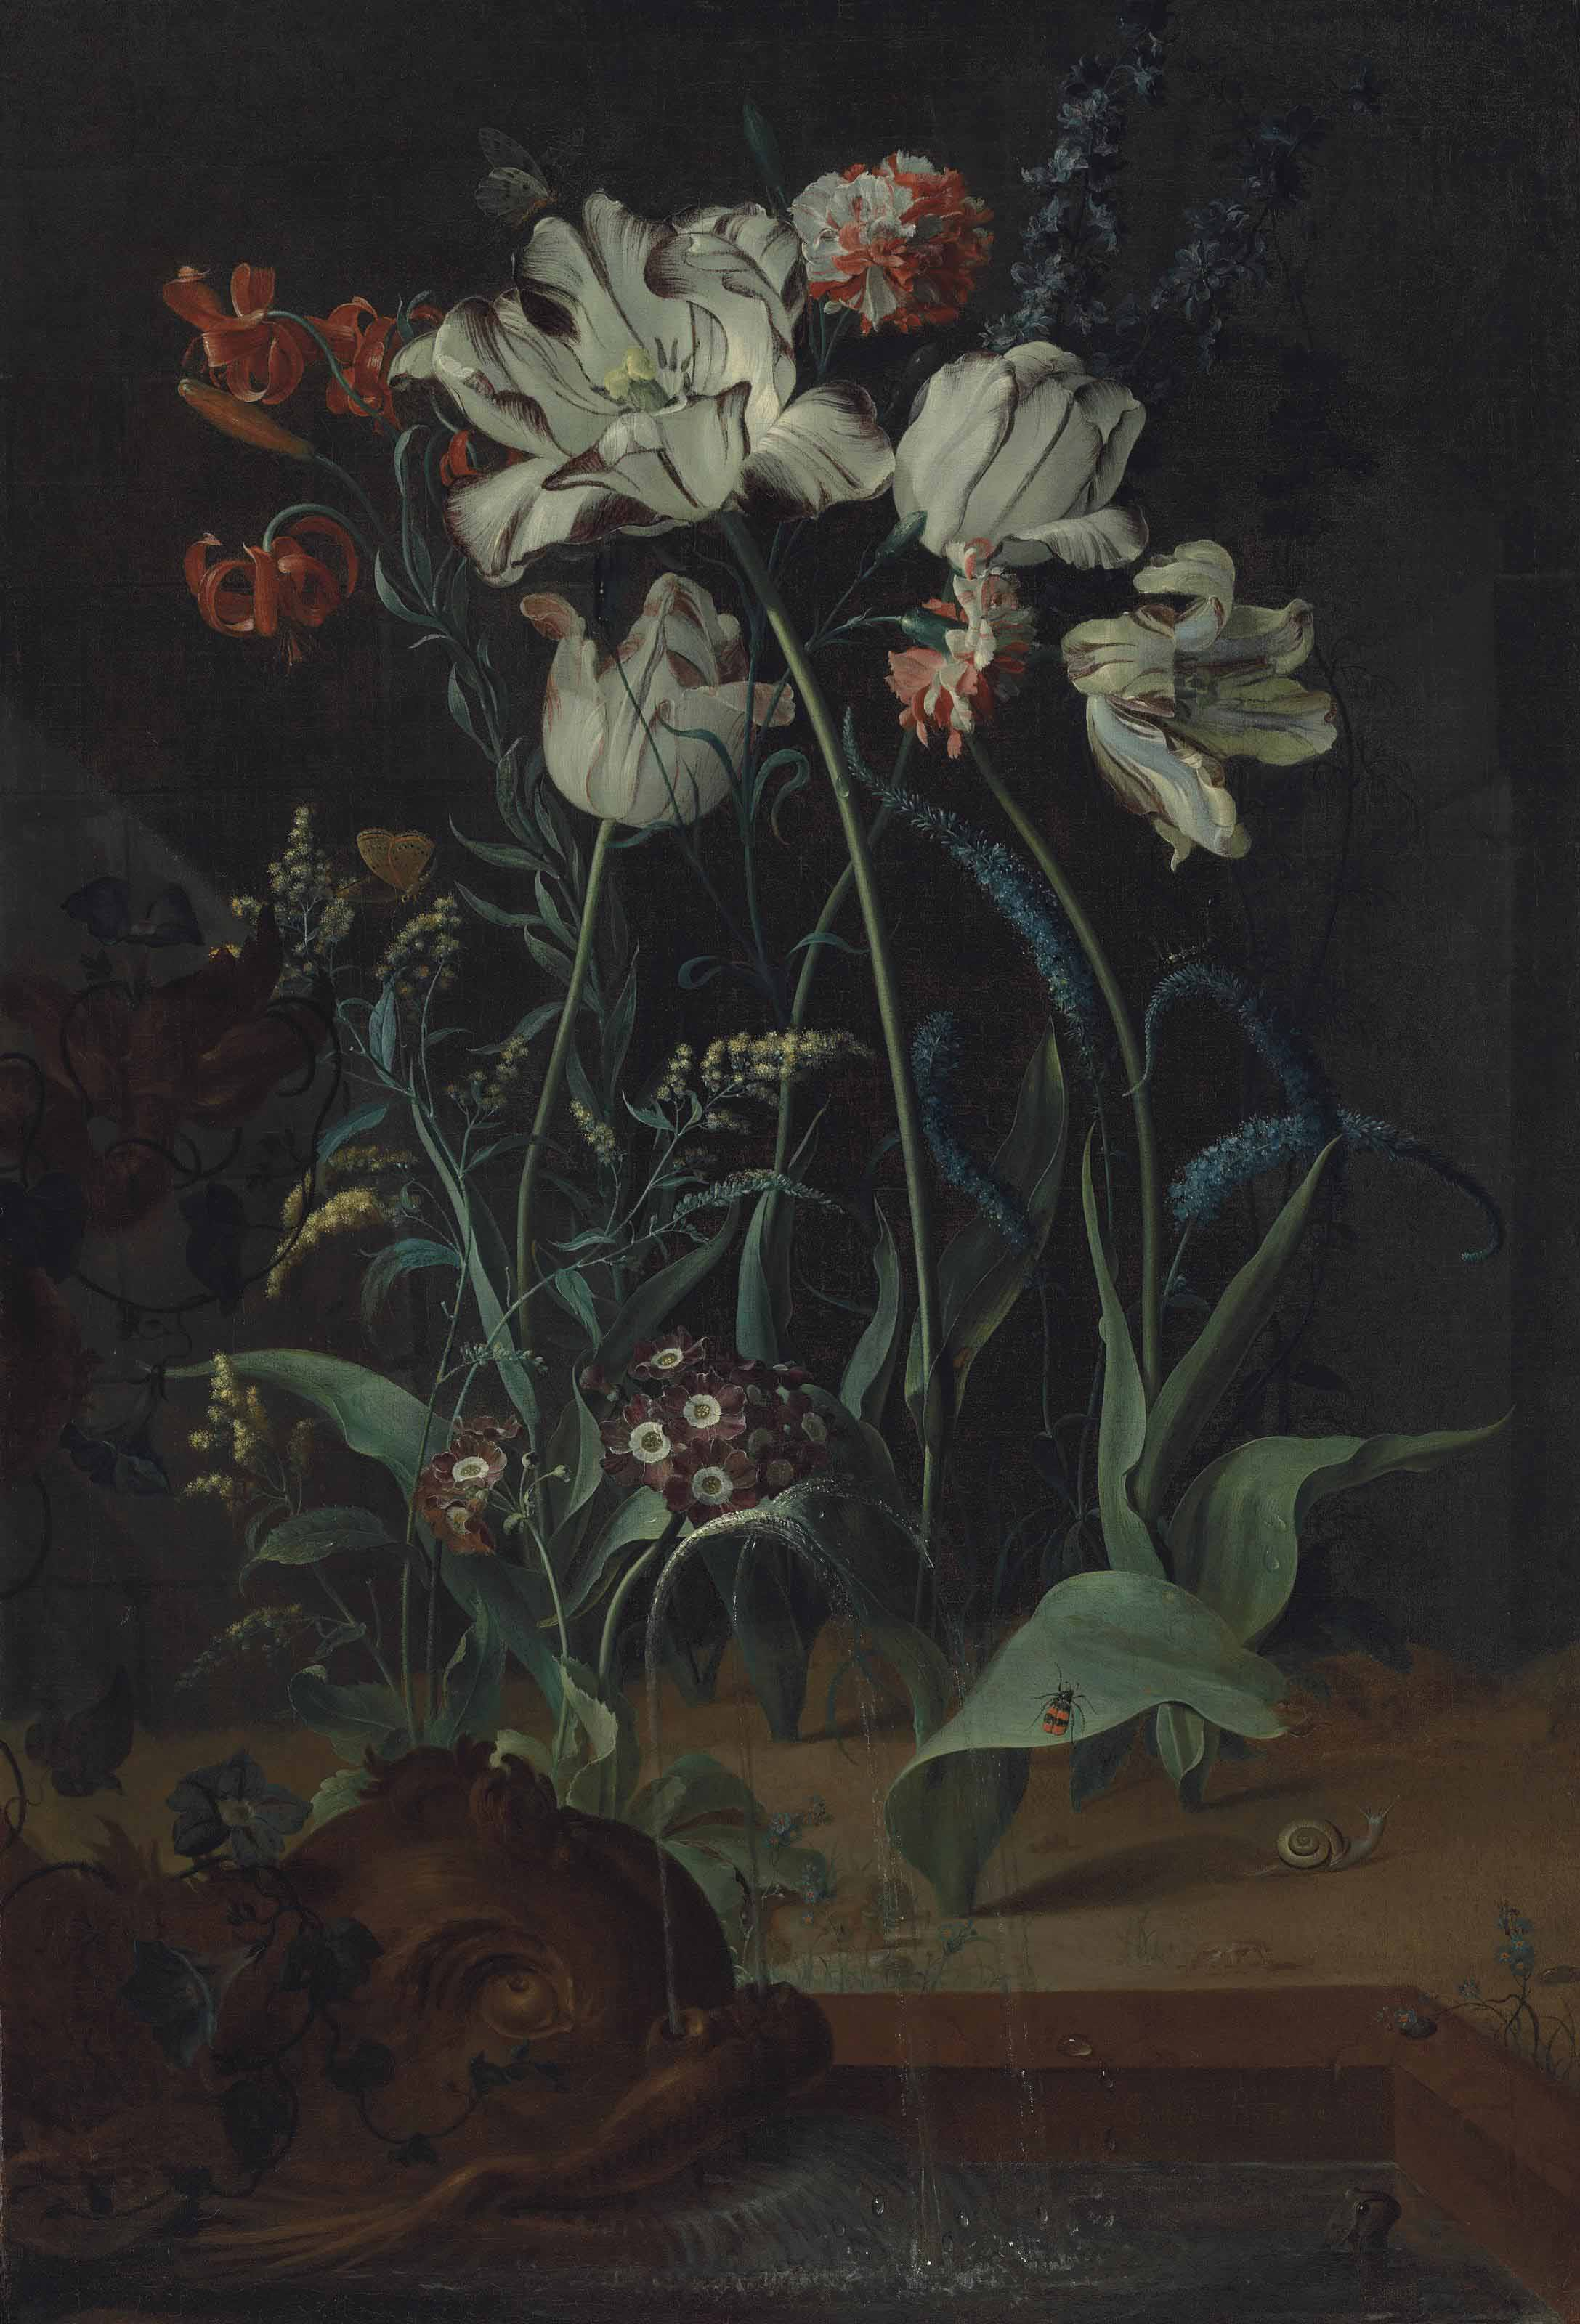 Parrot tulips, carnations, Turk-cap lilies and other flowers with a snail, a frog and insects by a fountain with a sculpted dolphin